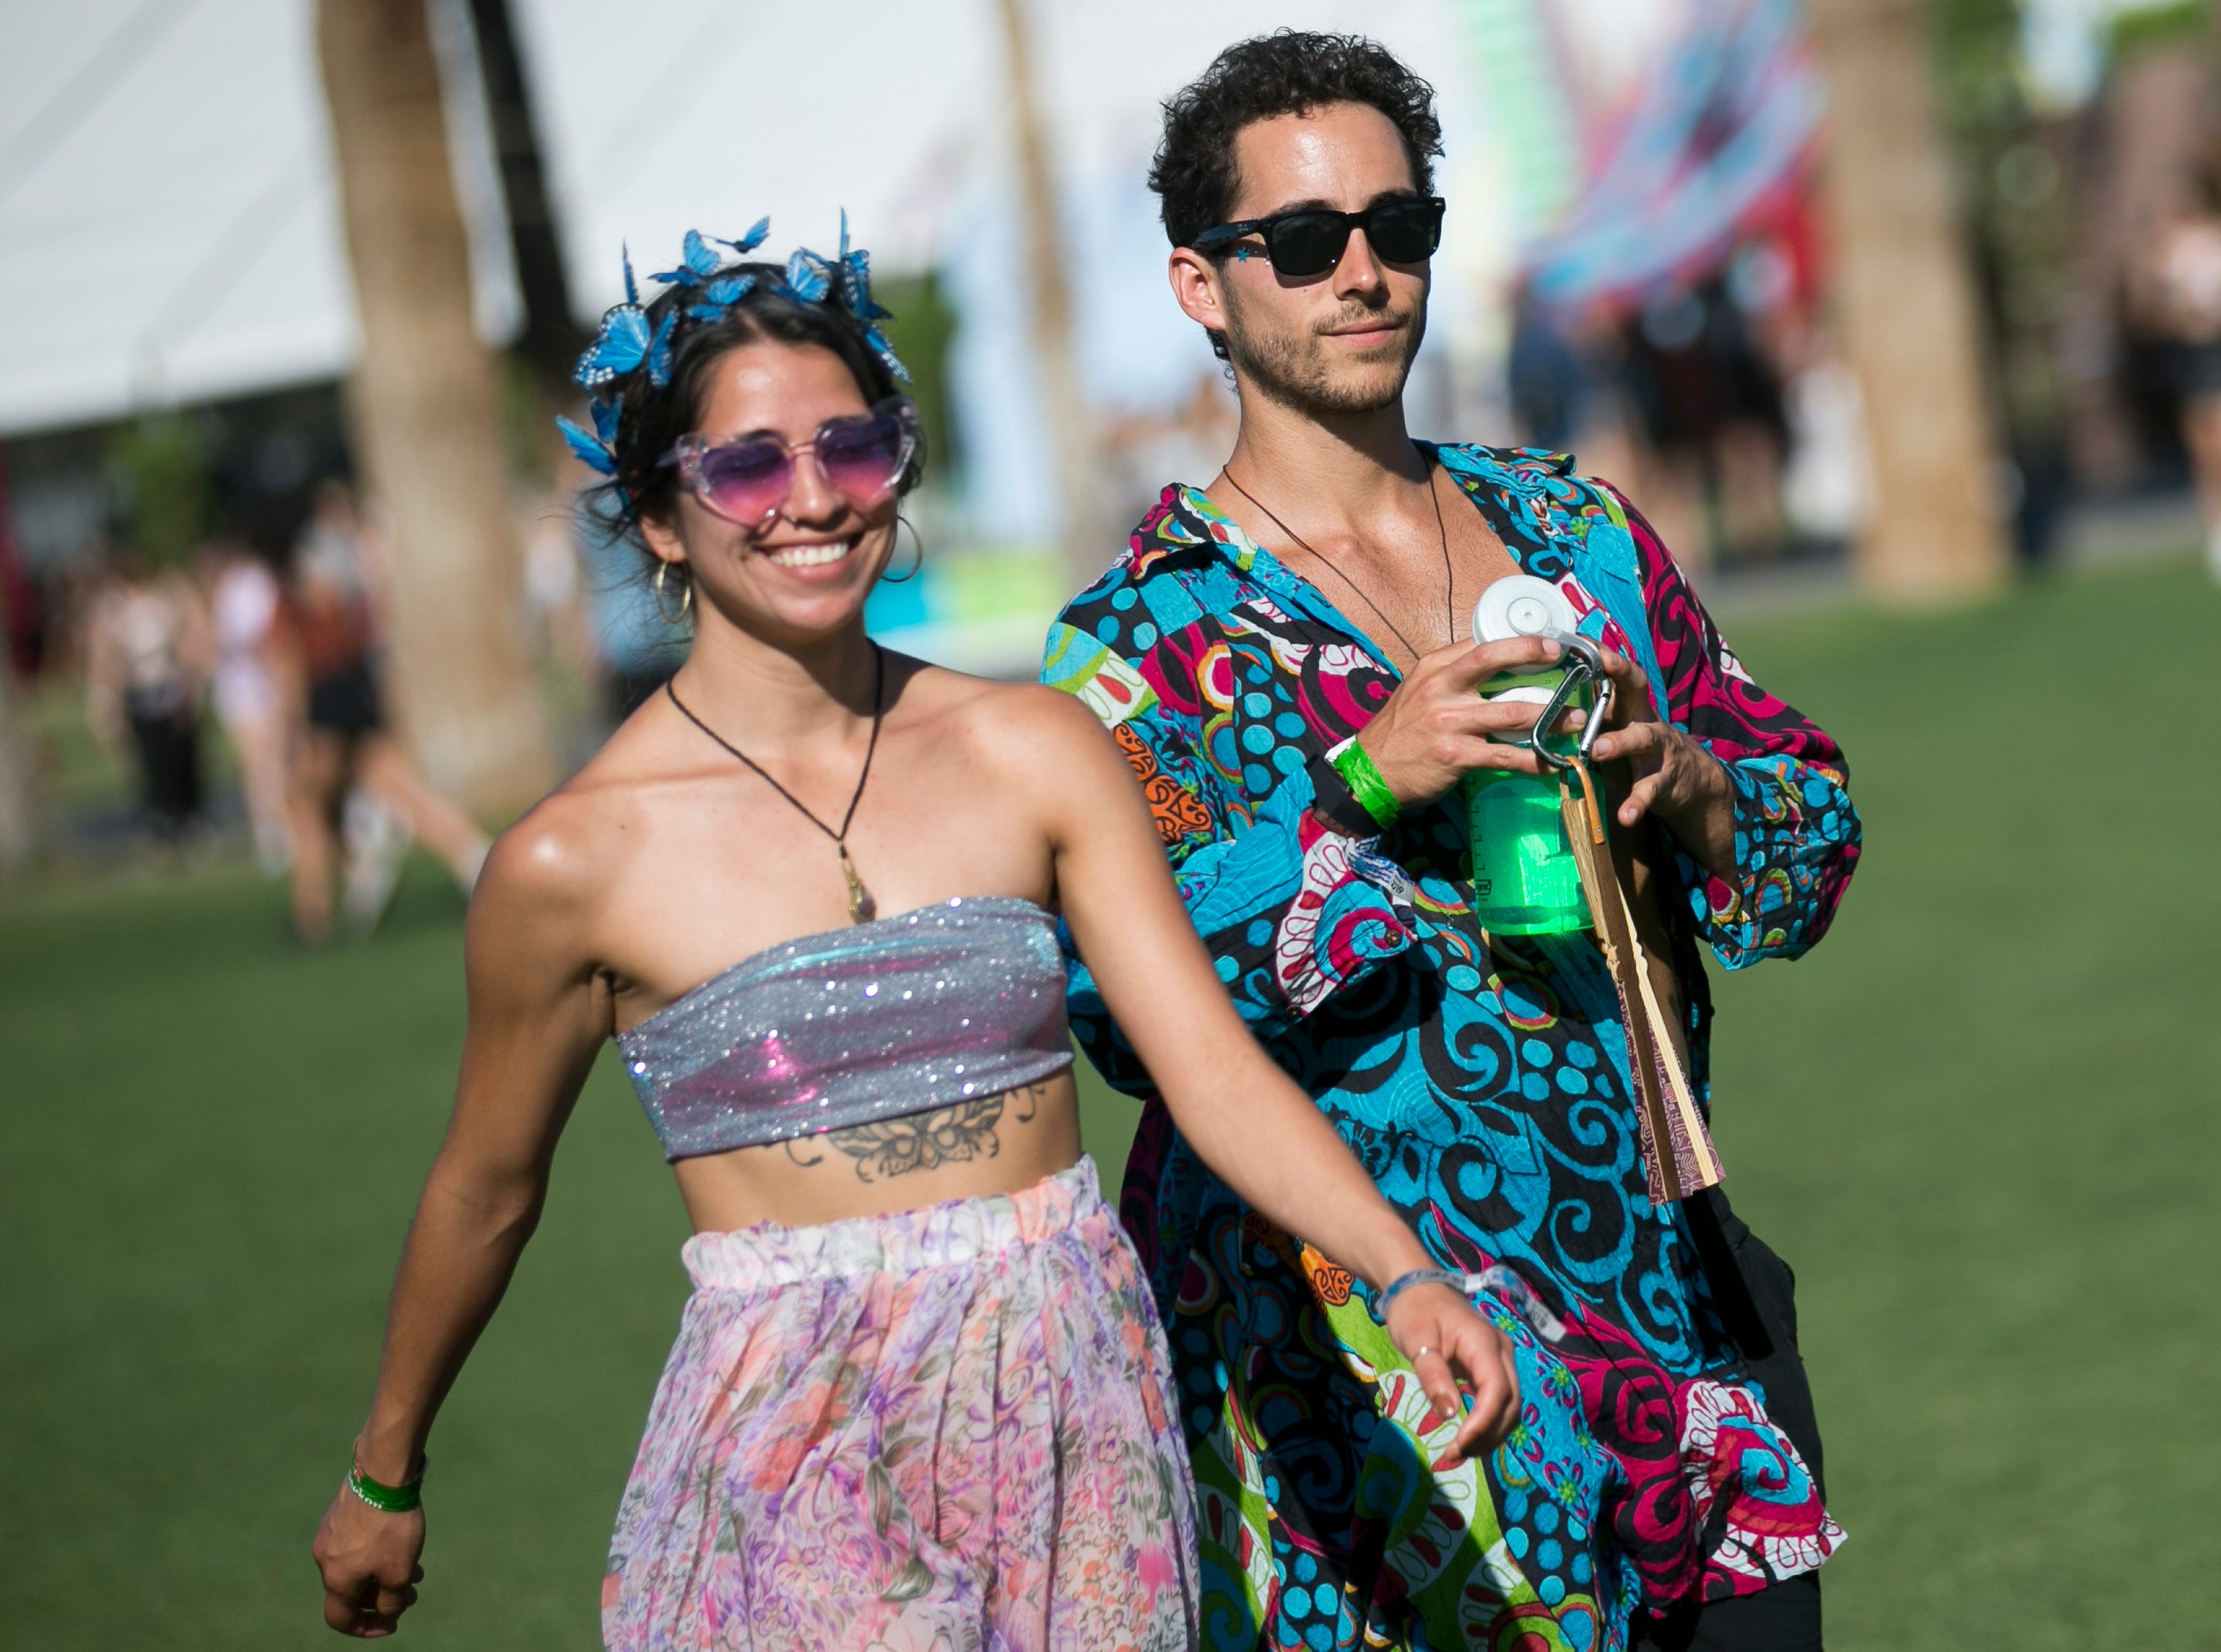 Rose Beltran (left) and Corey Pearls (right) walk through the festival grounds at Coachella 2019 in Indio, Calif. on Sat. April 13, 2019.